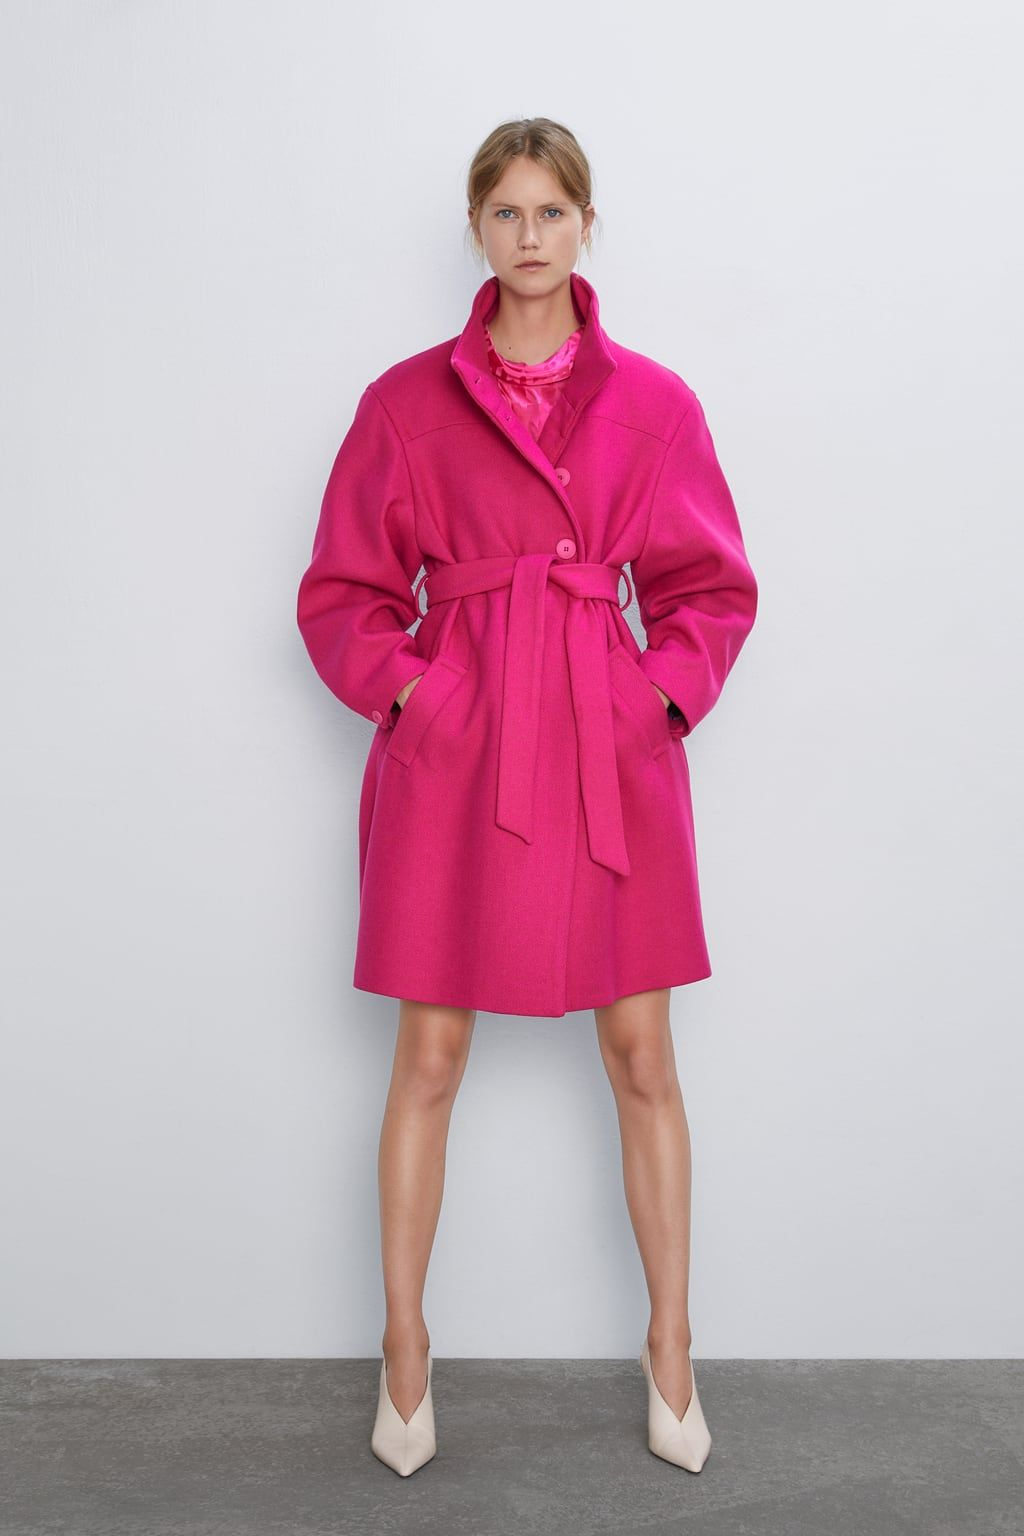 Hot Pink Coats Going Bright For Fall 2019 | Sydne Style